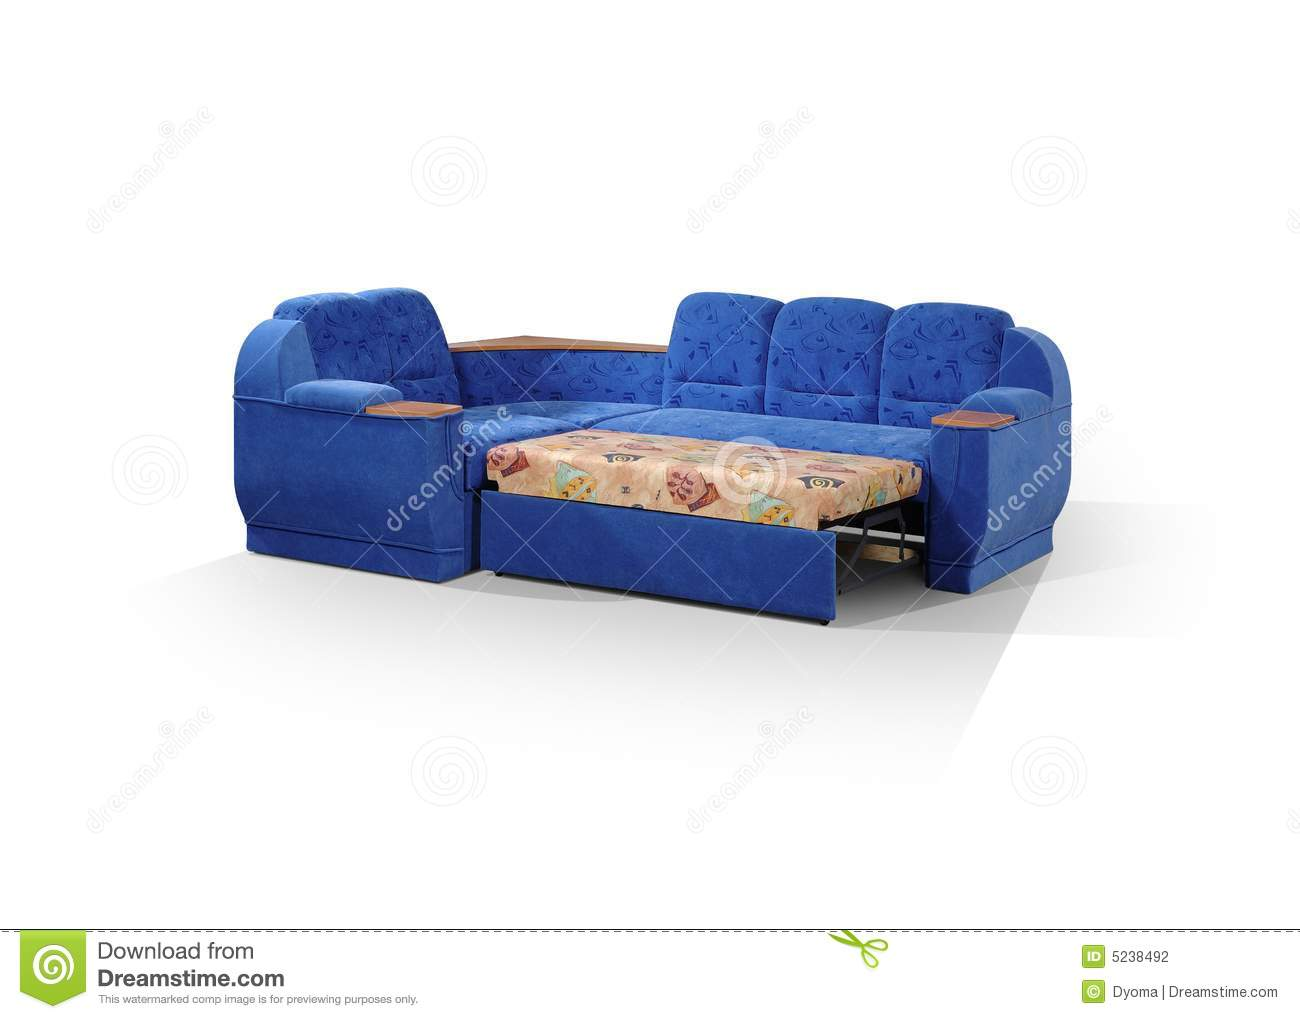 Angular Sofa Of Dark Blue Color Stock Photo Image 5238492